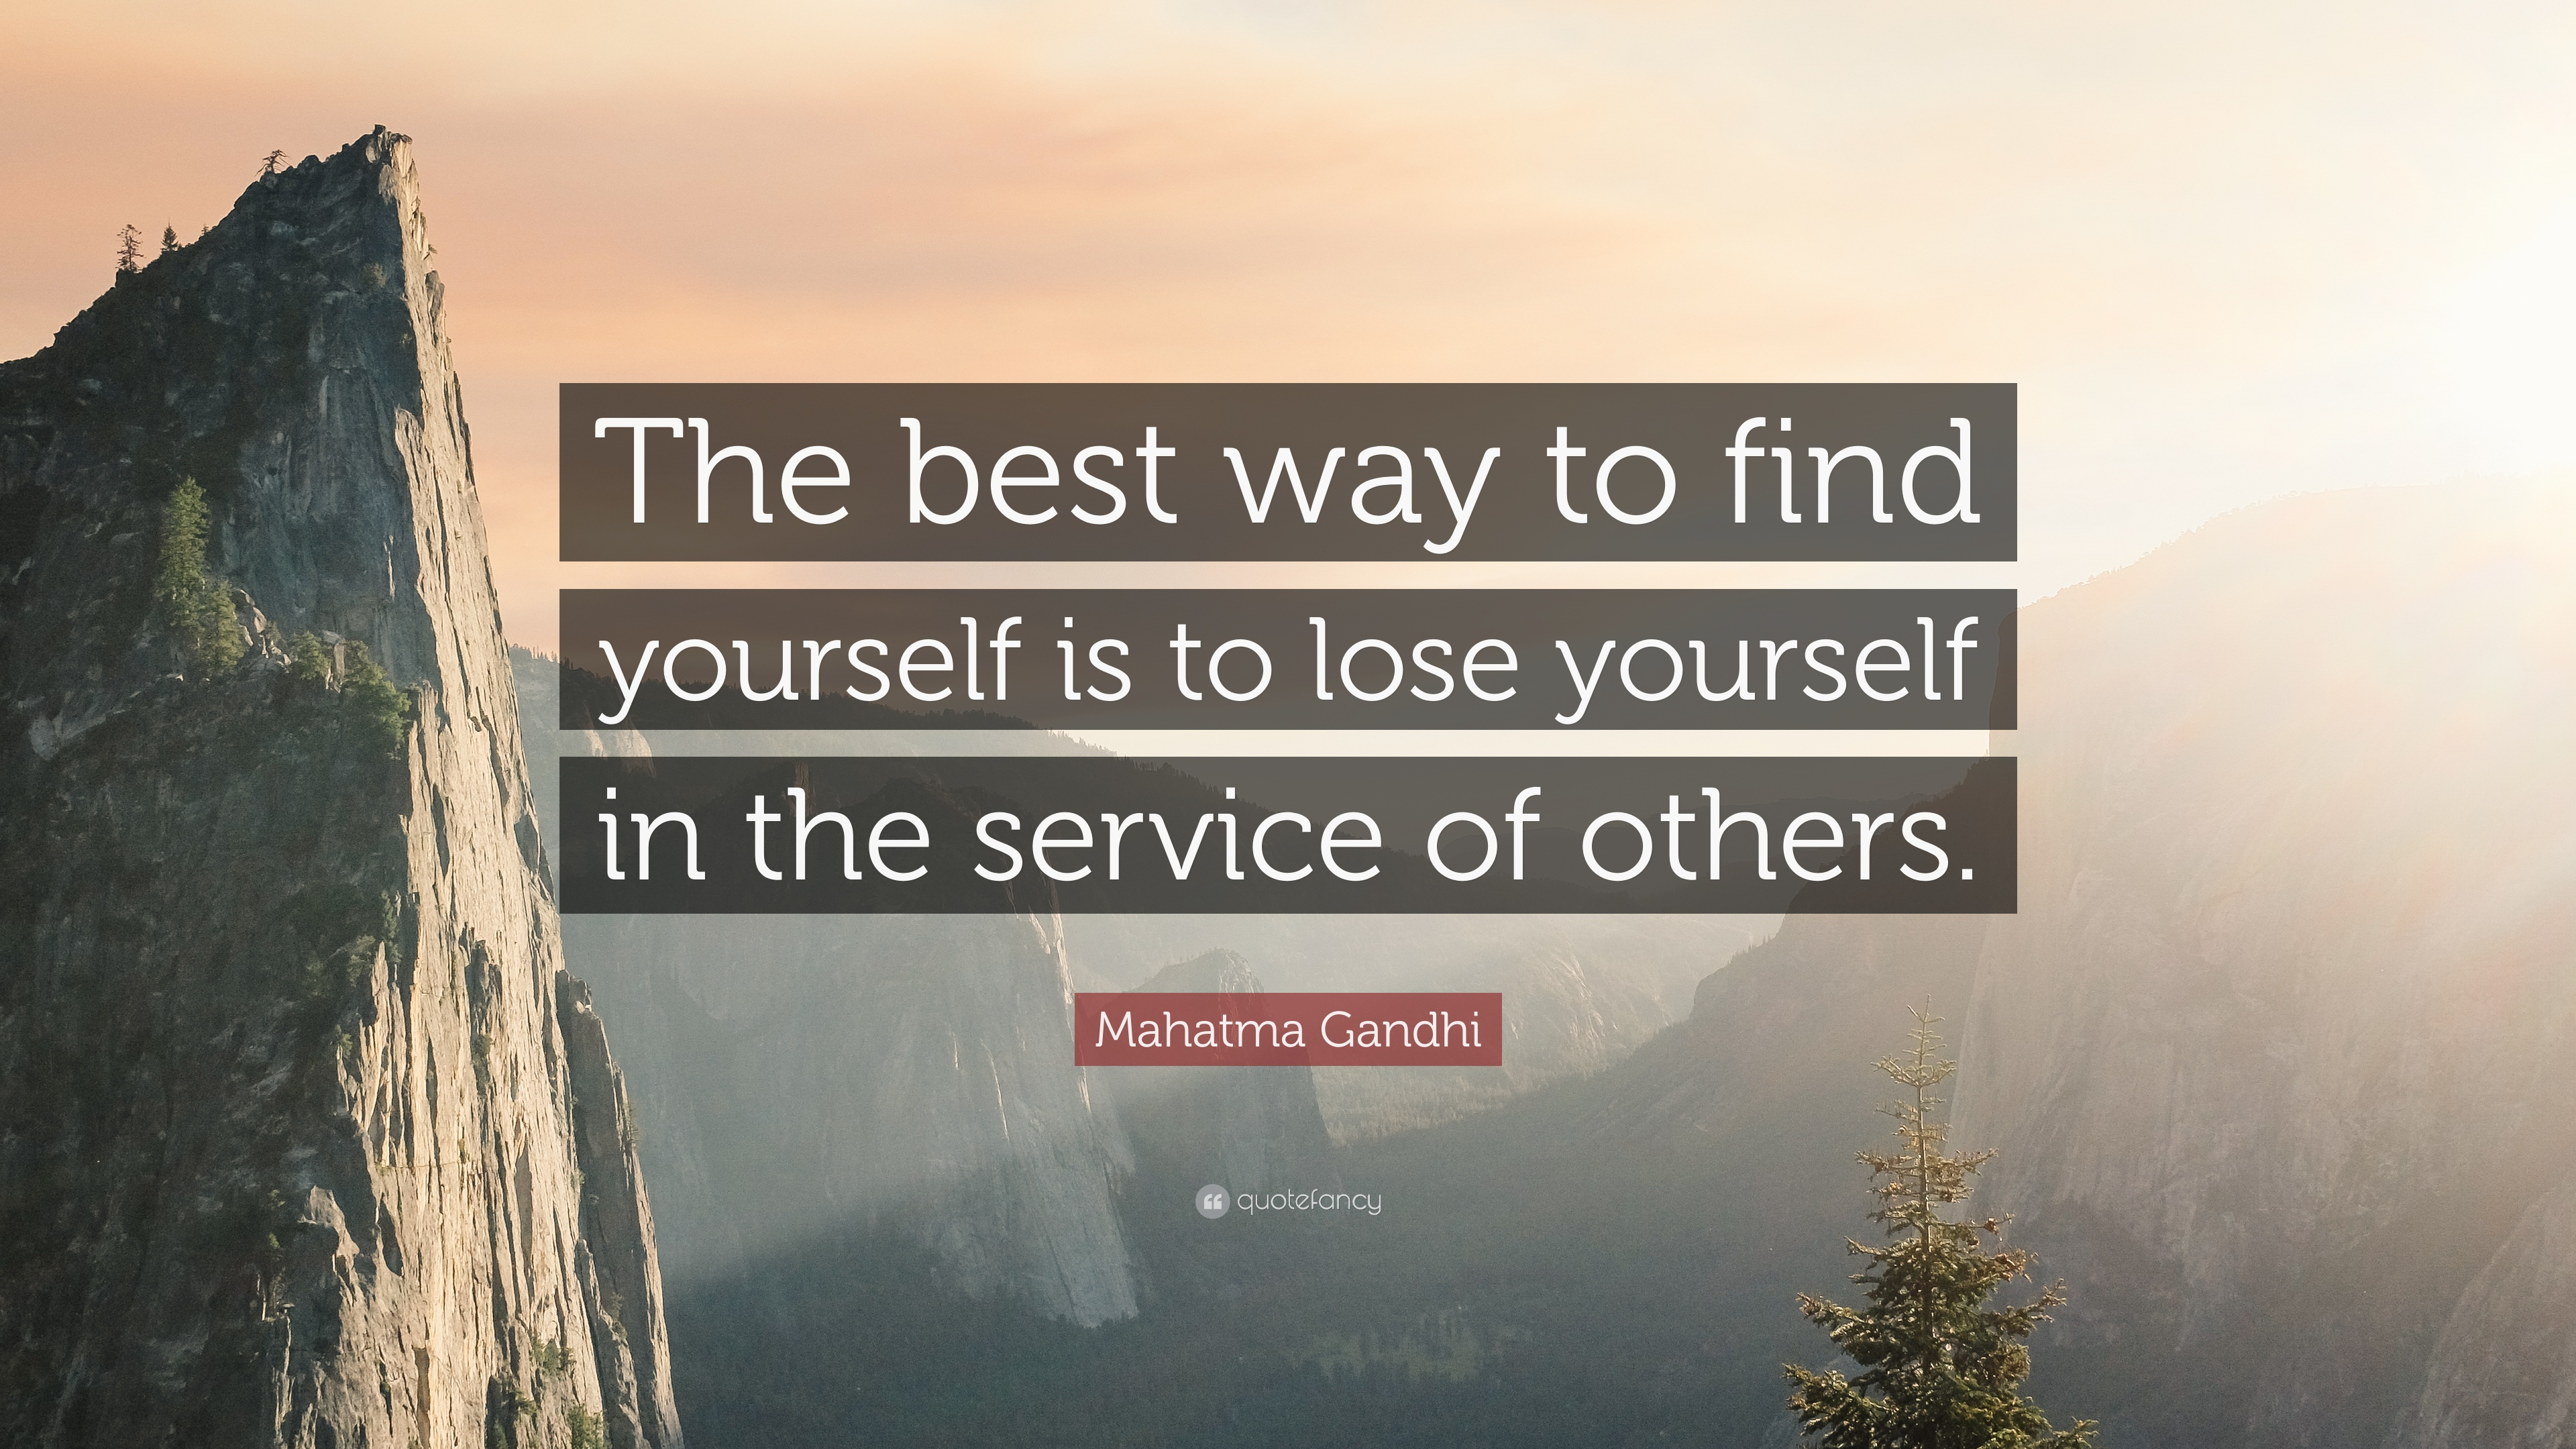 Mahatma Gandhi Quote The best way to find yourself is to lose yourself in the service of